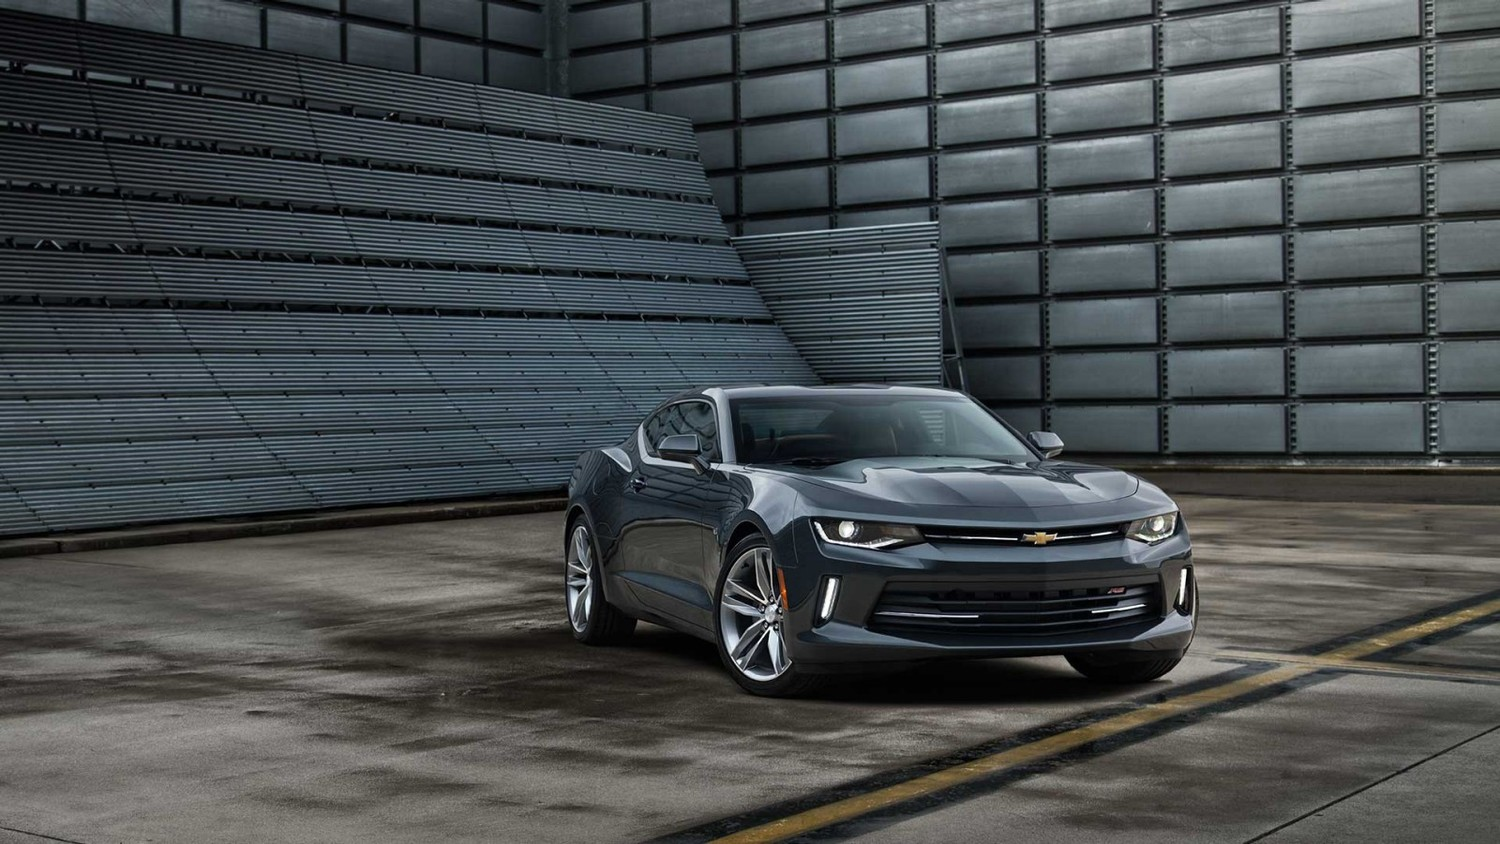 All Types pictures of the new camaro : The All-New Camaro V6 Snarls, Pops and Crackles Like A Jag: Lease ...